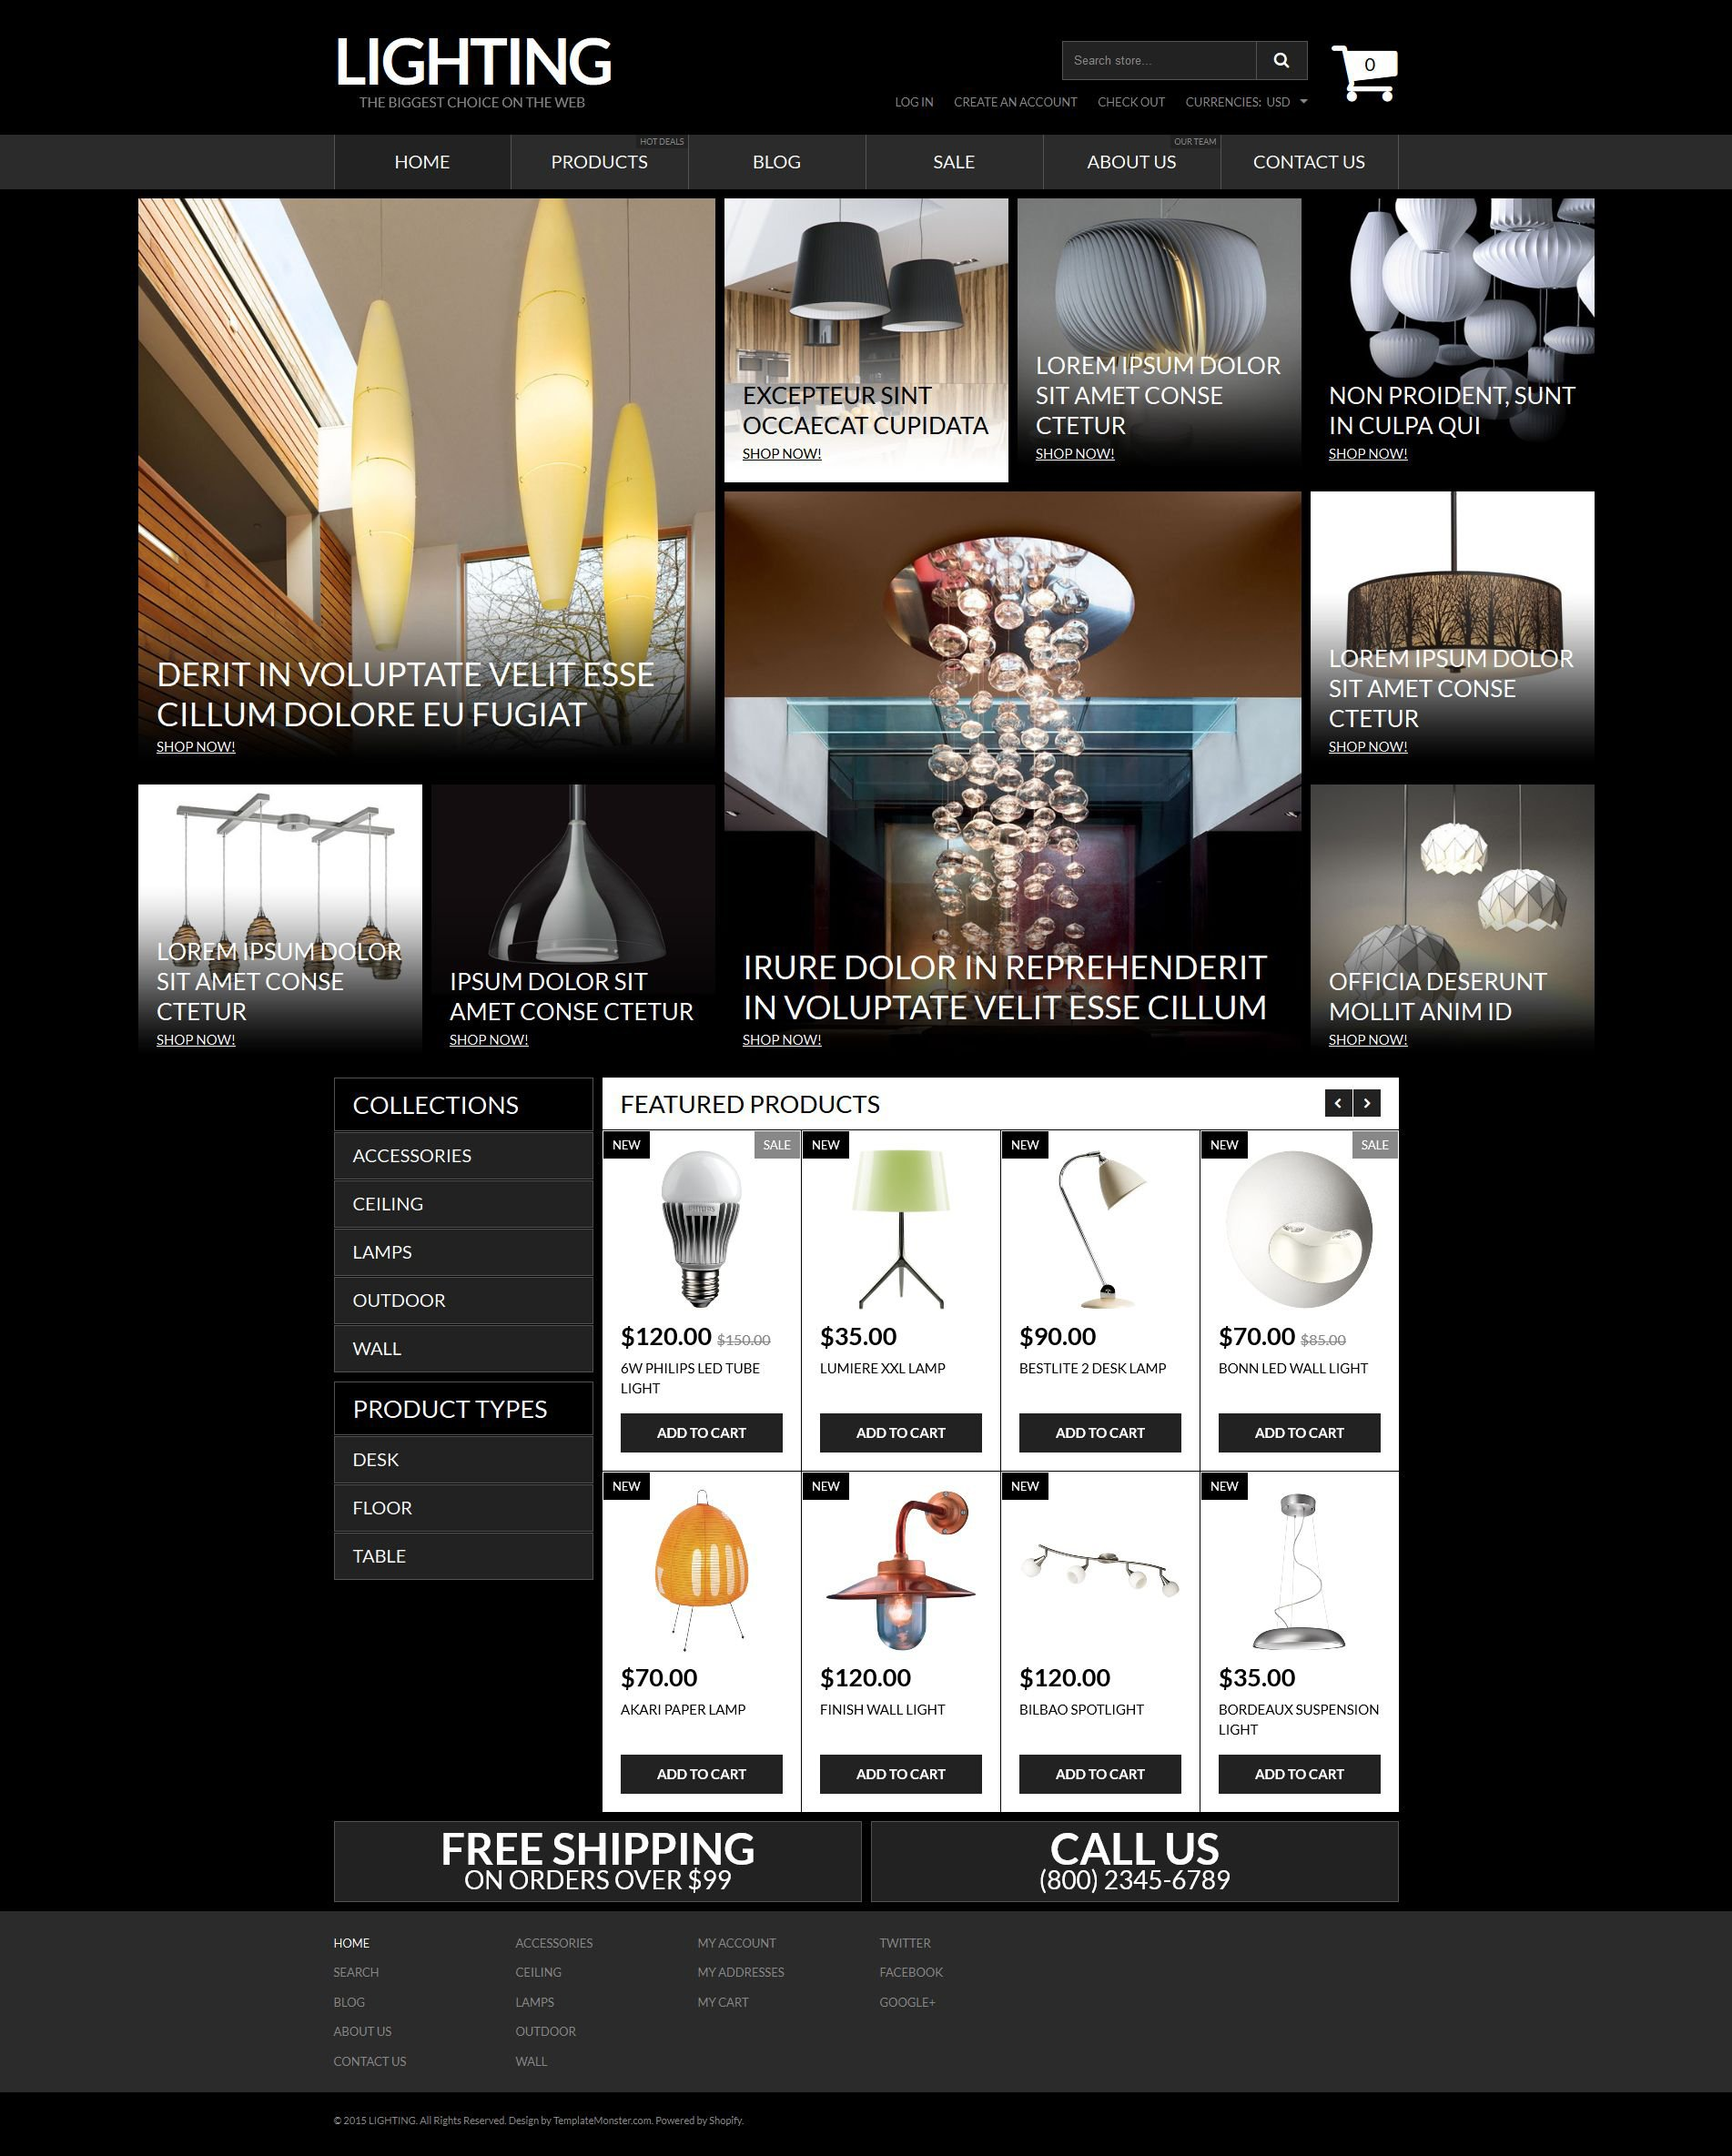 The Lighting Store Lamps Shopify Design 53115, one of the best Shopify themes of its kind (industrial, most popular), also known as Lighting Store lamps Shopify template, accessories Shopify template, luminium Shopify template, ufo Shopify template, light Shopify template, lamp Shopify template, ceiling Shopify template, wall Shopify template, UFO pendant Shopify template, exterior Shopify template, interior and related with Lighting Store lamps, accessories, luminium, ufo, light, lamp, ceiling, wall, UFO pendant, exterior, interior, etc.